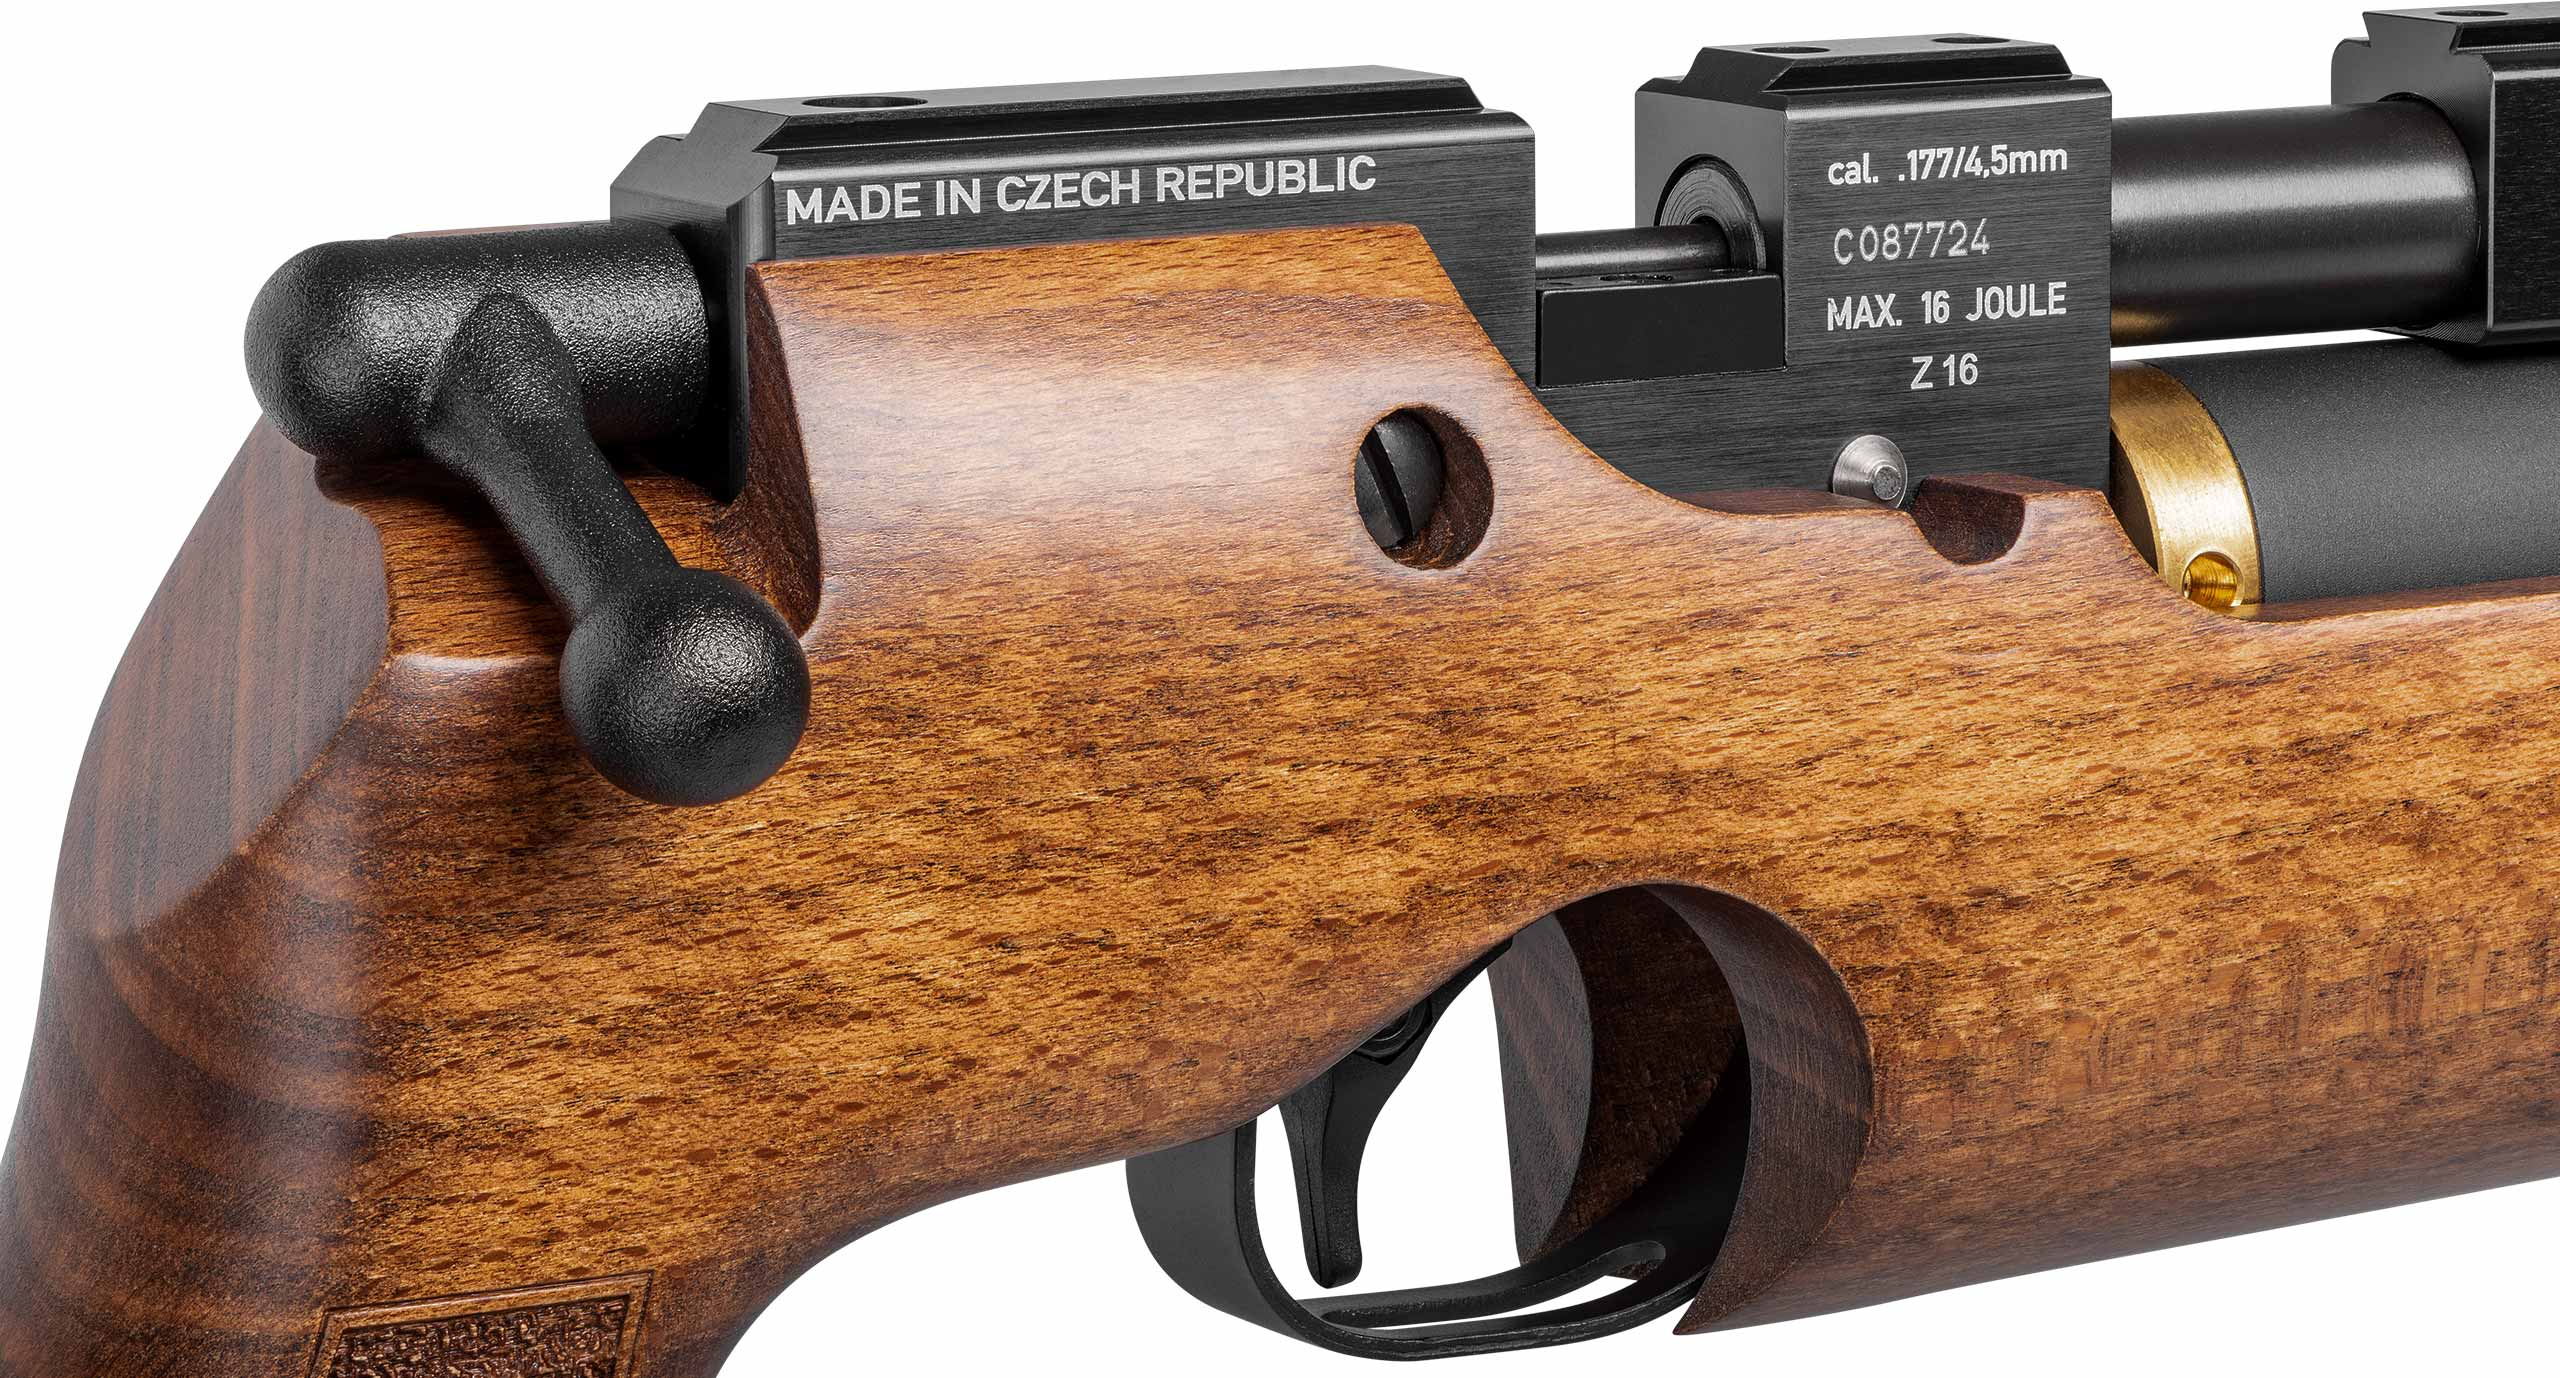 S200 Sporter Rifle Lever and Action